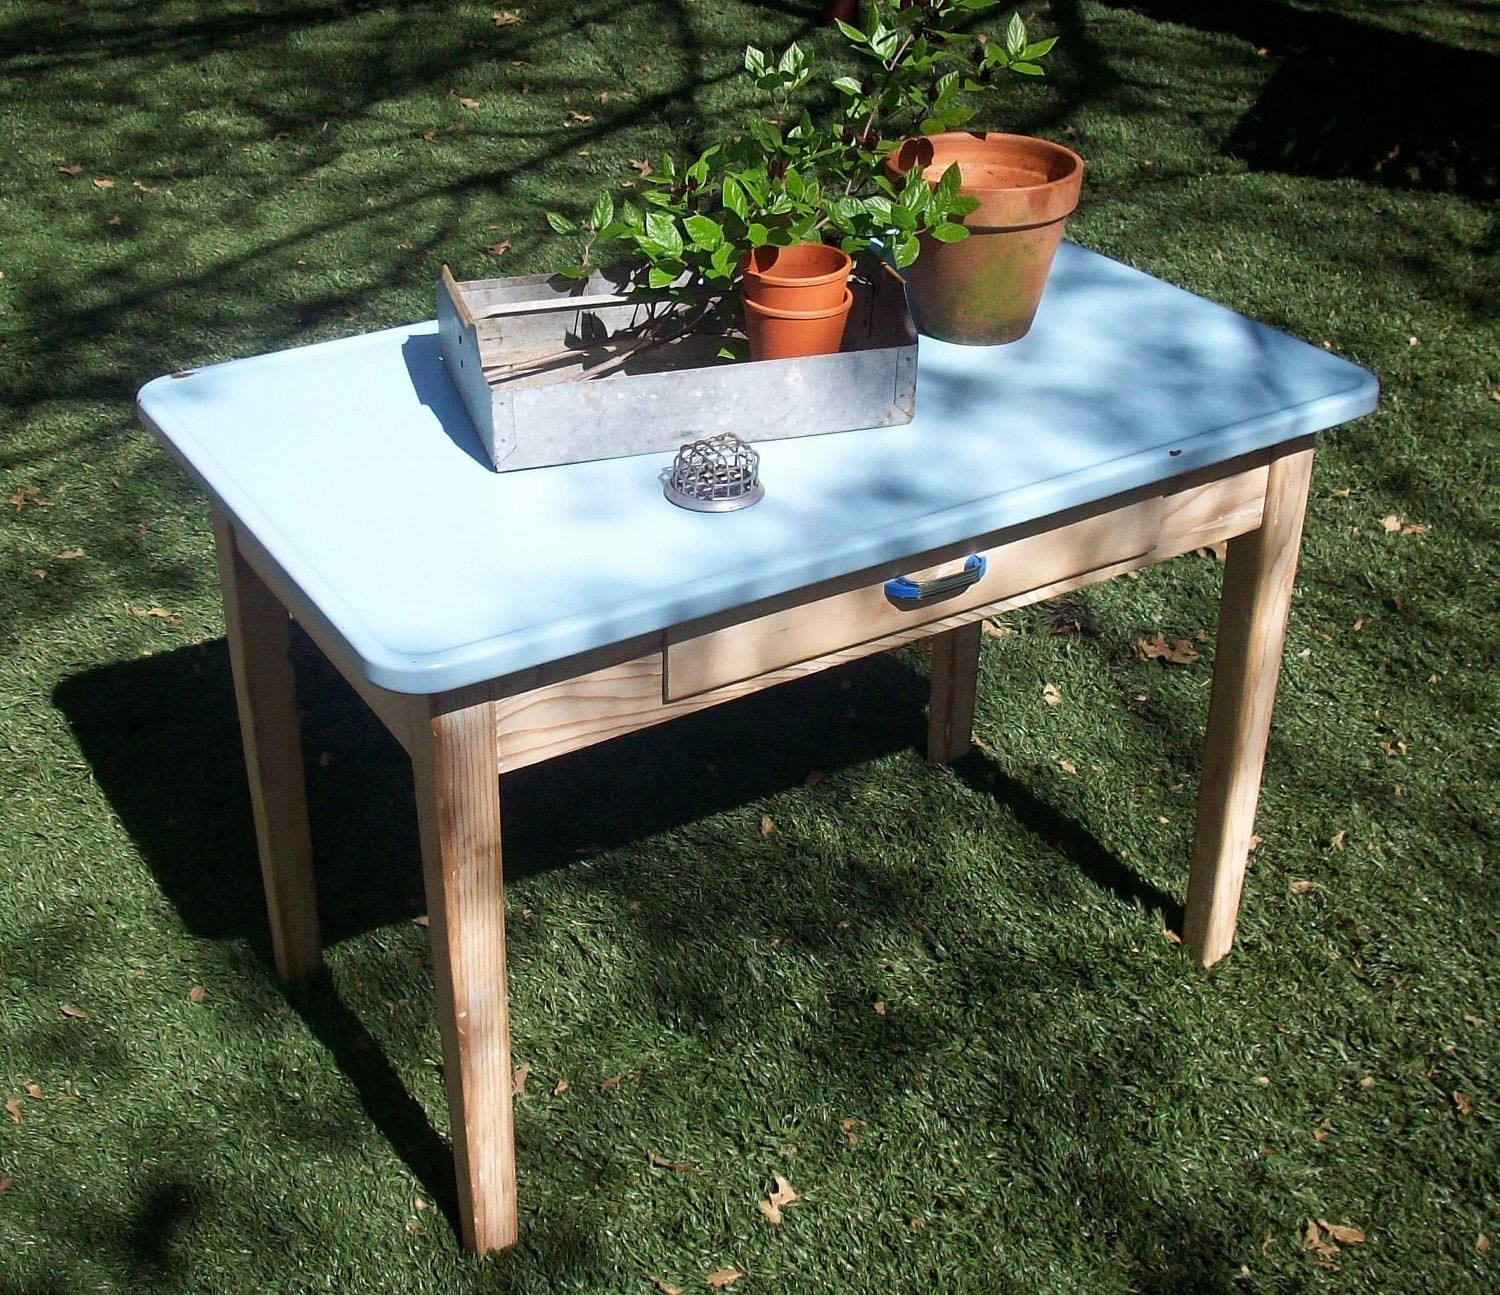 Vintage Enamel Top Table  Farm Table  Laundry Table  Garden. Setting Kitchen Cabinets. How To Put Lights Under Kitchen Cabinets. Kitchen Cabinet Warranty. Kitchen Cabinet Cleaning Service. Lowes Kitchen Wall Cabinets. Wooden Cabinets For Kitchen. Kitchen Cabinets And Counters. Solid Wood Shaker Kitchen Cabinets